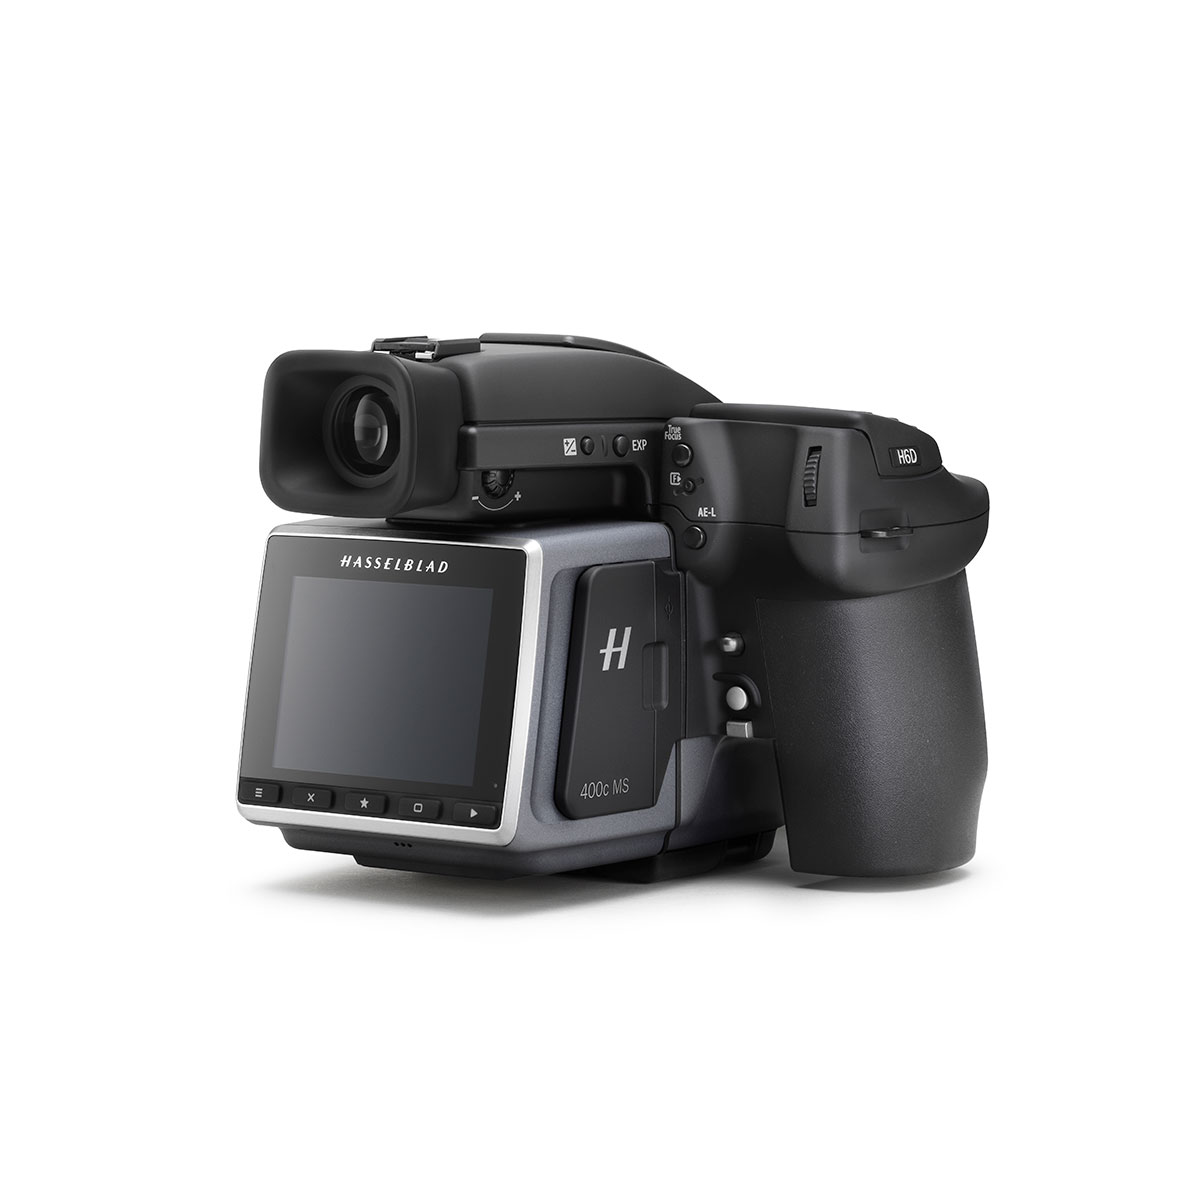 HASSELBLAD H6D-400cMS